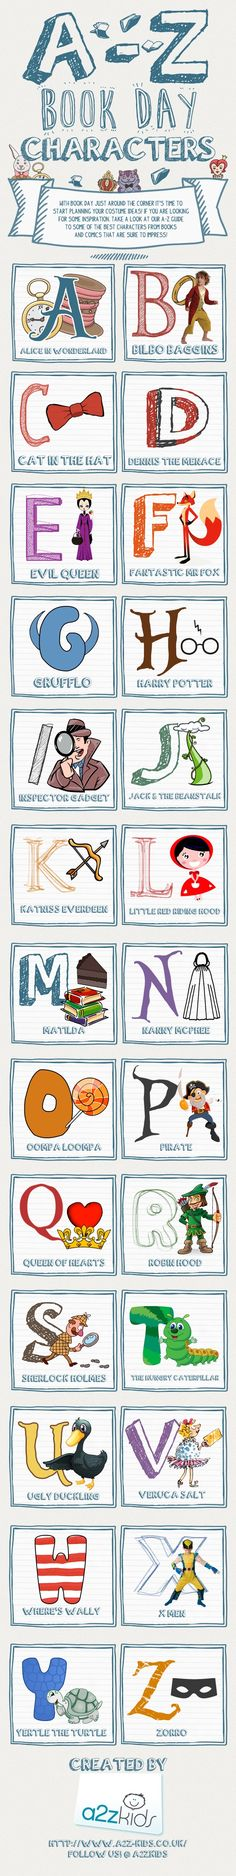 #book characters from A to Z #infographic